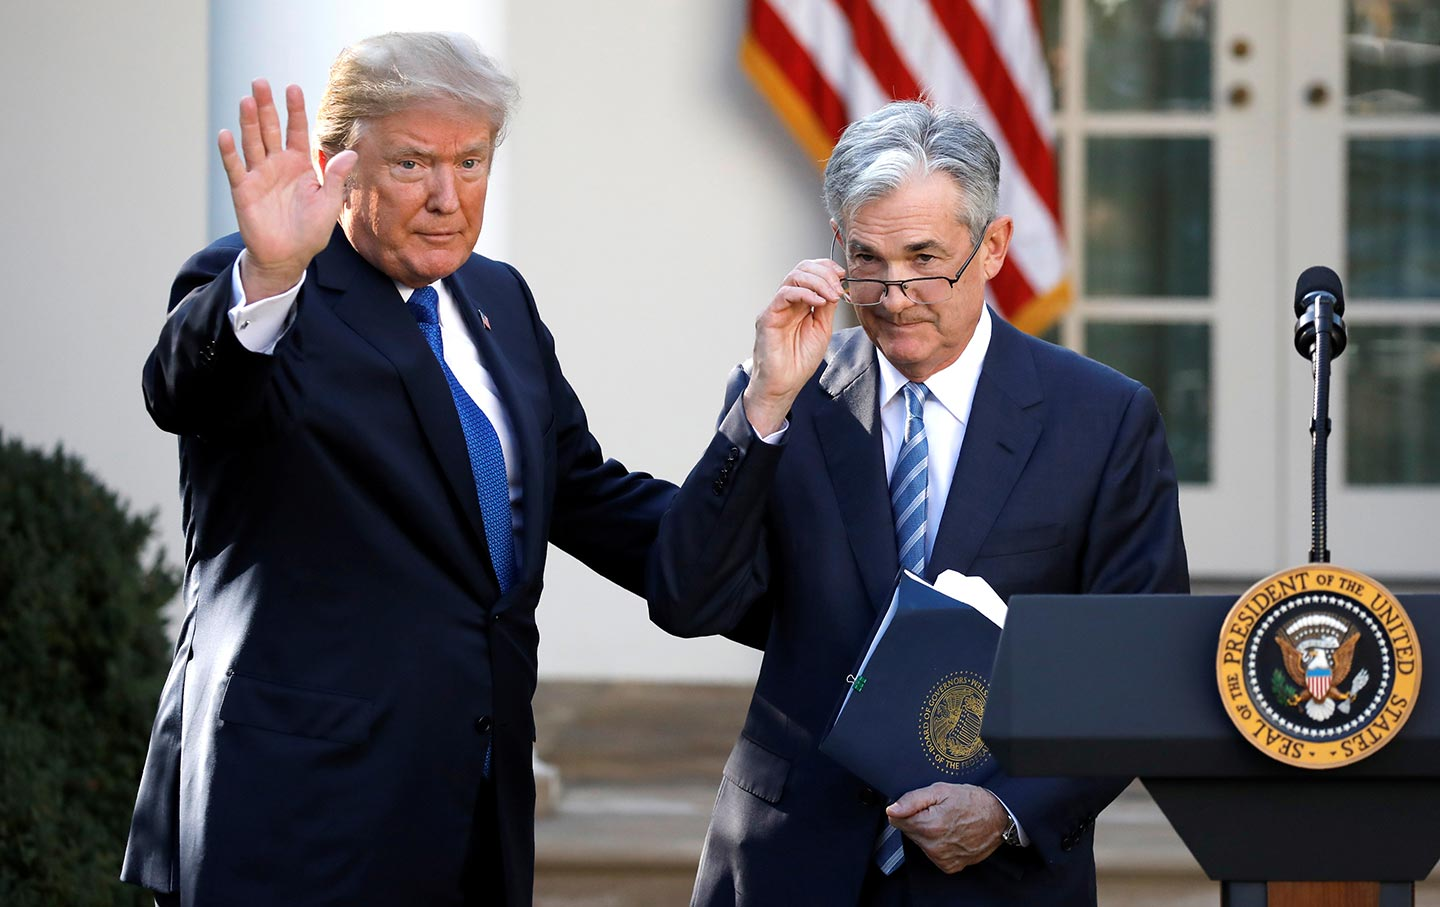 https://www.thenation.com/wp-content/uploads/2018/02/Trump-Jerome-Powell-rtr-img.jpg?scale=896&compress=80 /